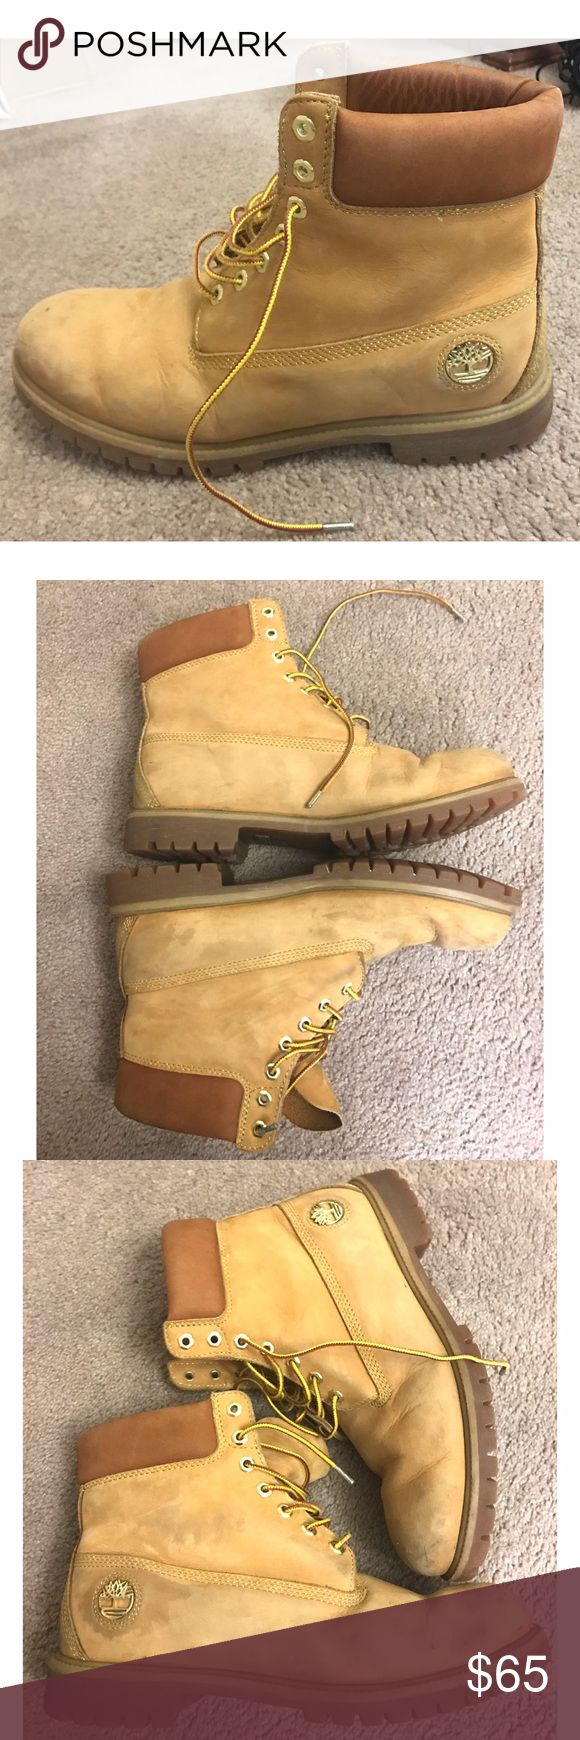 Timberland (Timbs) Men Boot 13M Wheat Nubuck Timberland MEN BOOTS 13M Wheat Nubuck Waterproof and Insulated . Boots are a bit worn but overall solid condition. Timberland Shoes Boots